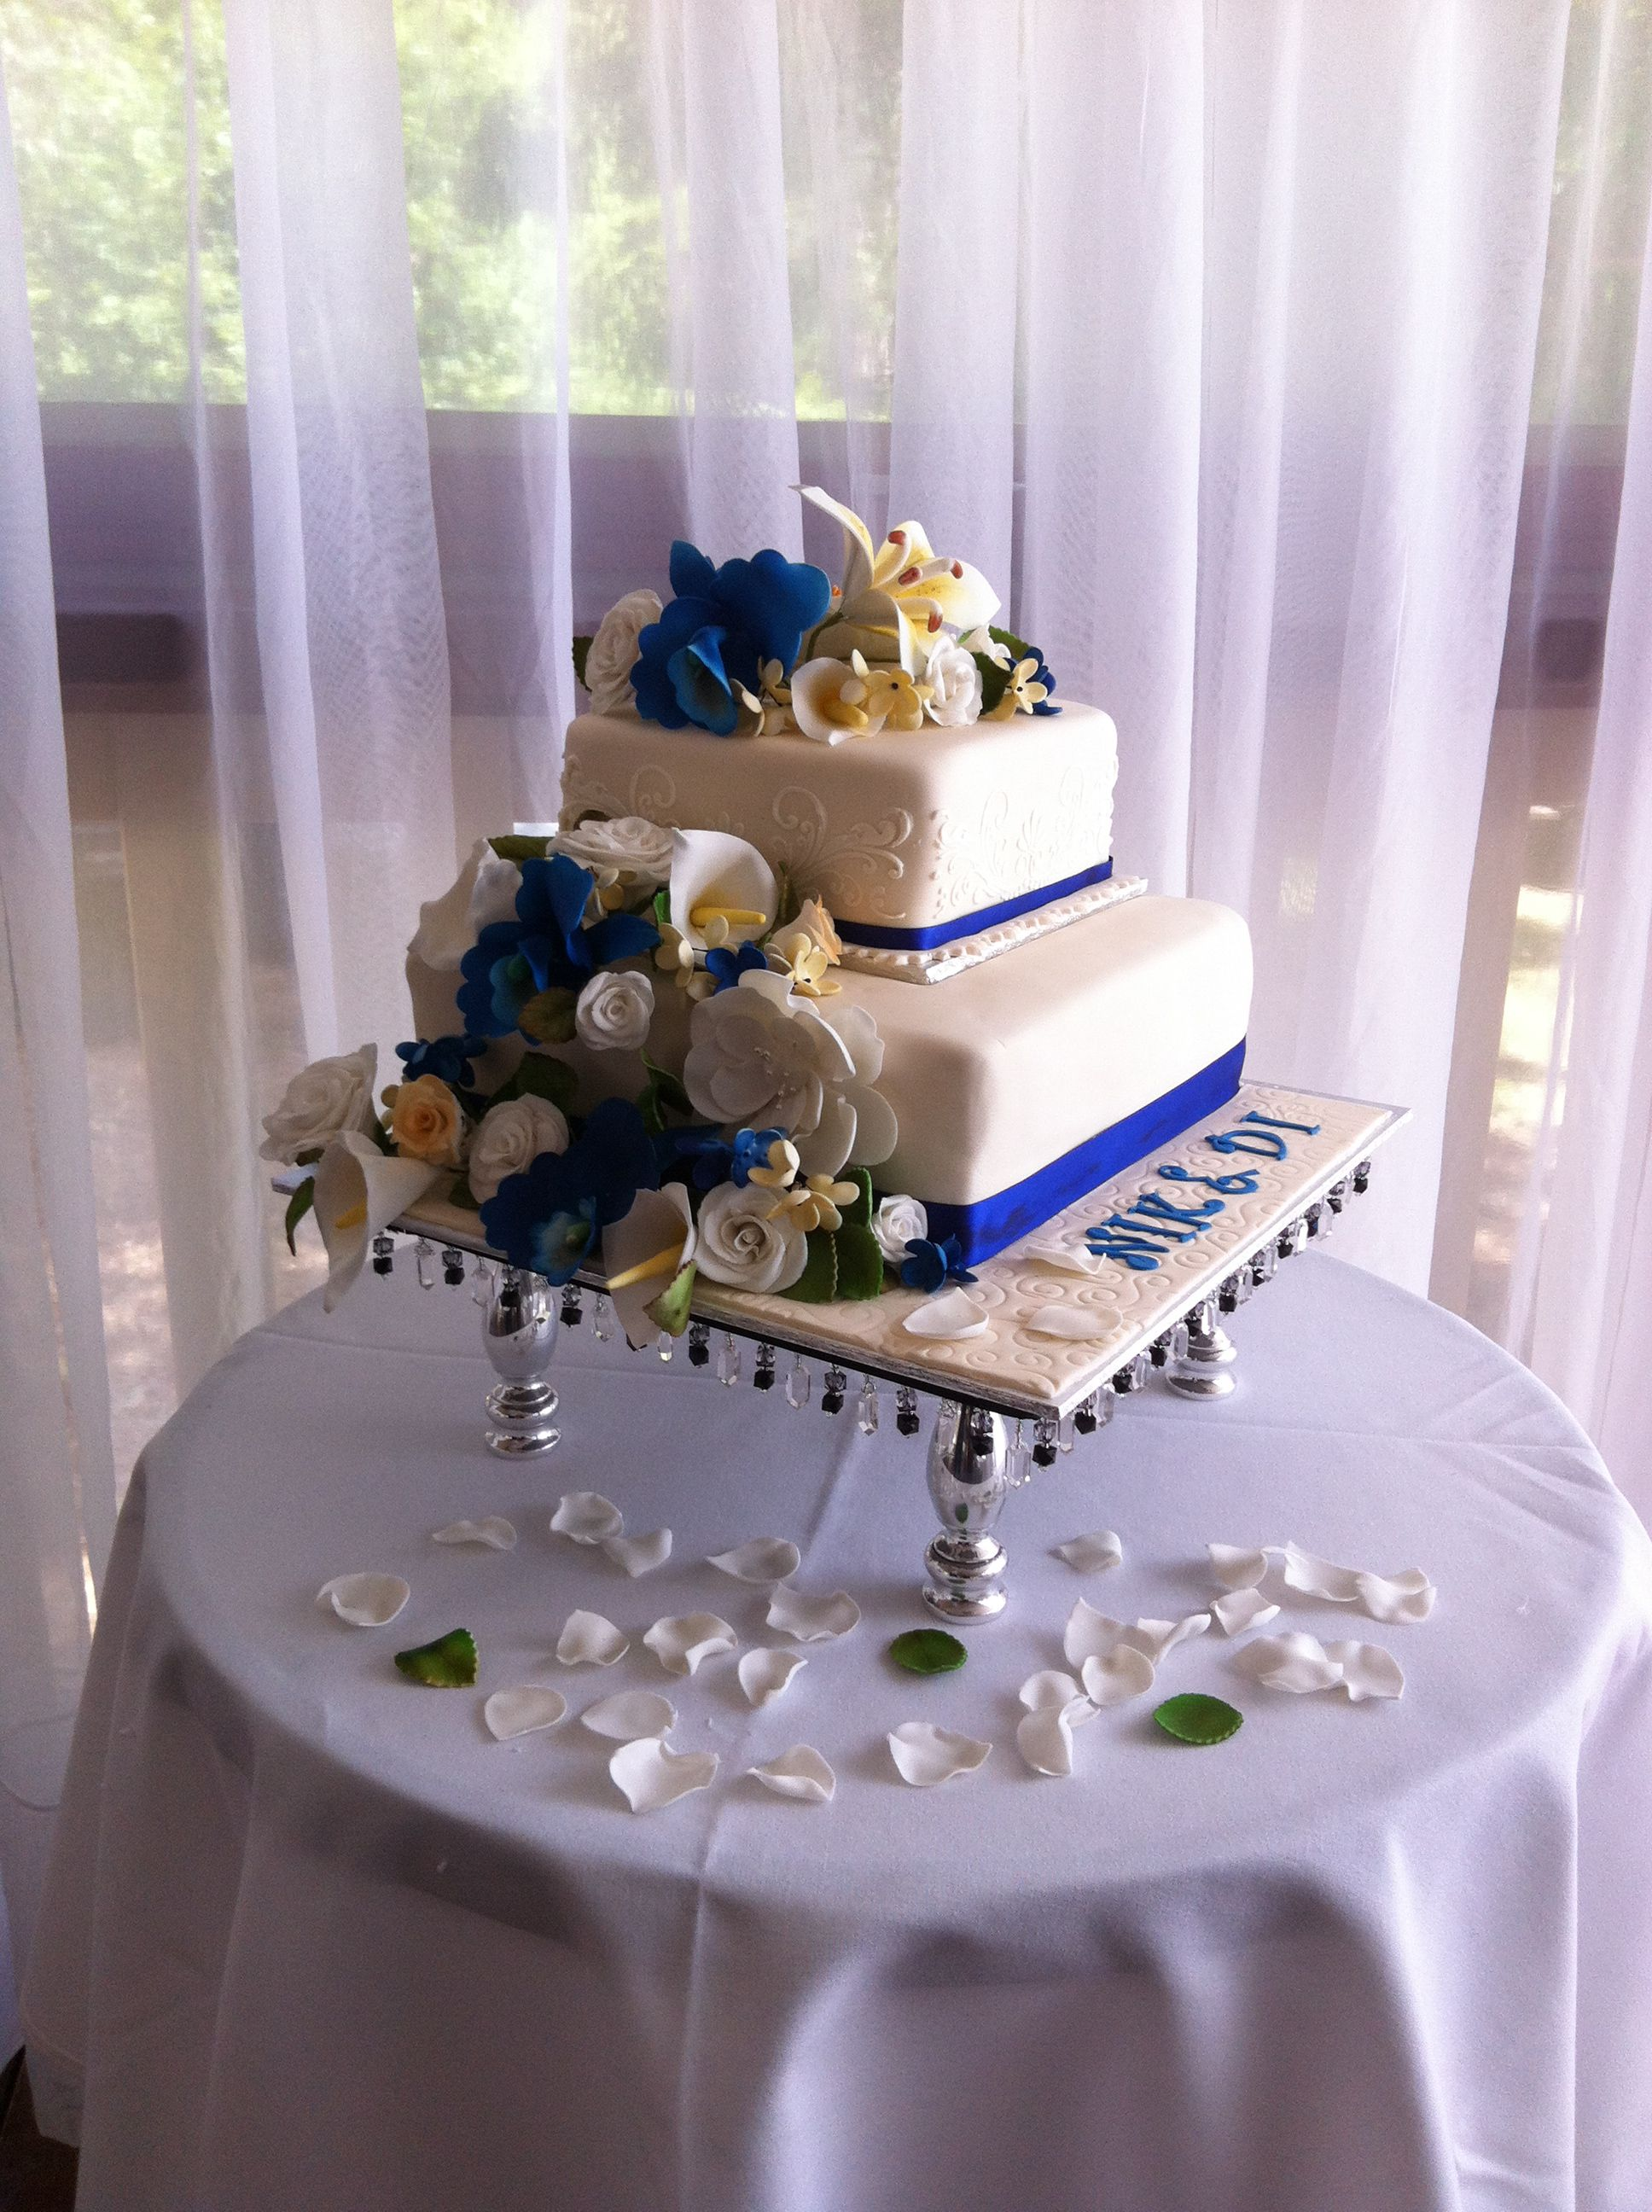 2 tier wedding cake with blue white yellow flowers wedding ideas 2 tier wedding cake with blue white yellow flowers izmirmasajfo Images